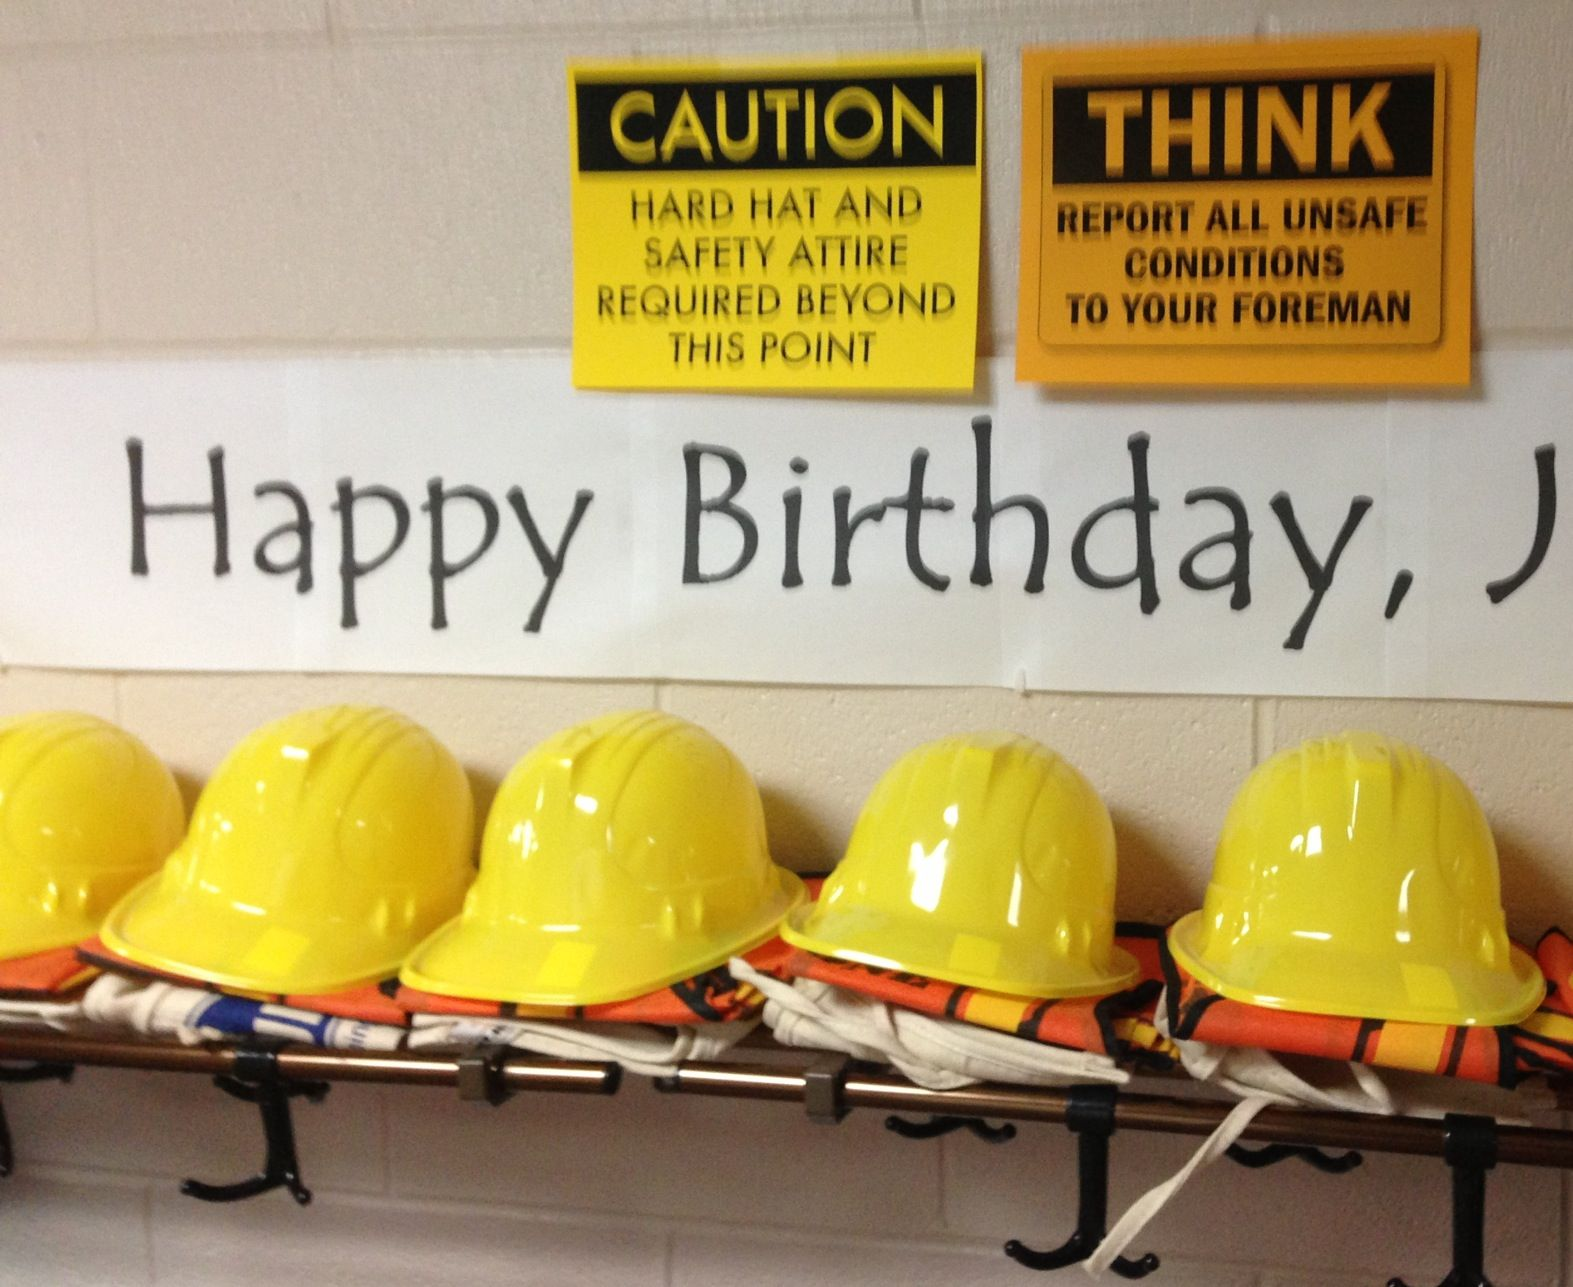 Construction Party safety gear. I set out safety gear